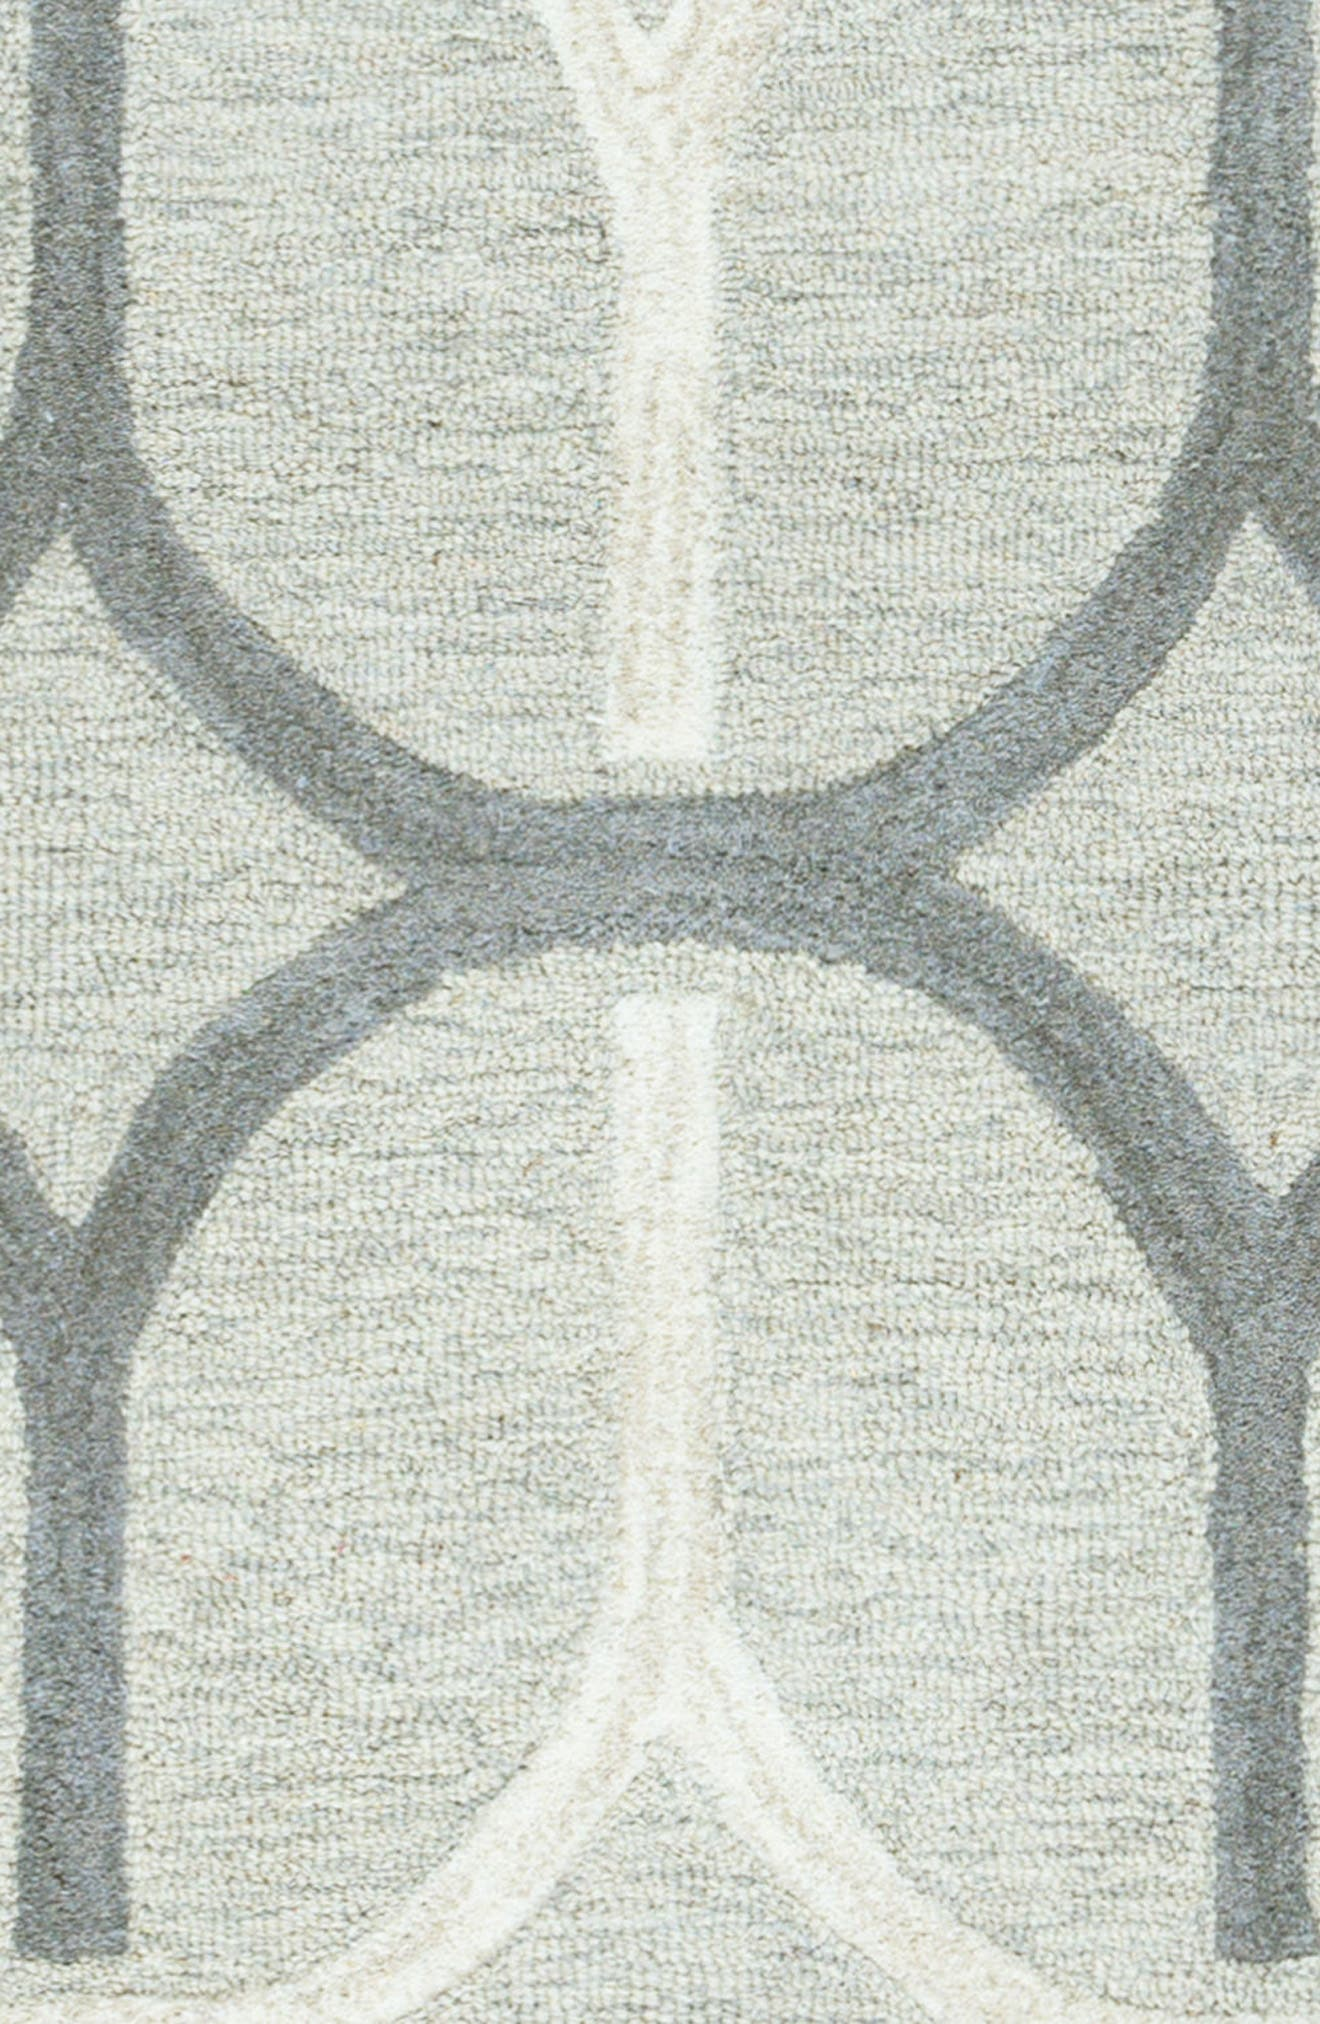 'Caterine Ovals' Hand Tufted Wool Area Rug,                             Alternate thumbnail 5, color,                             020